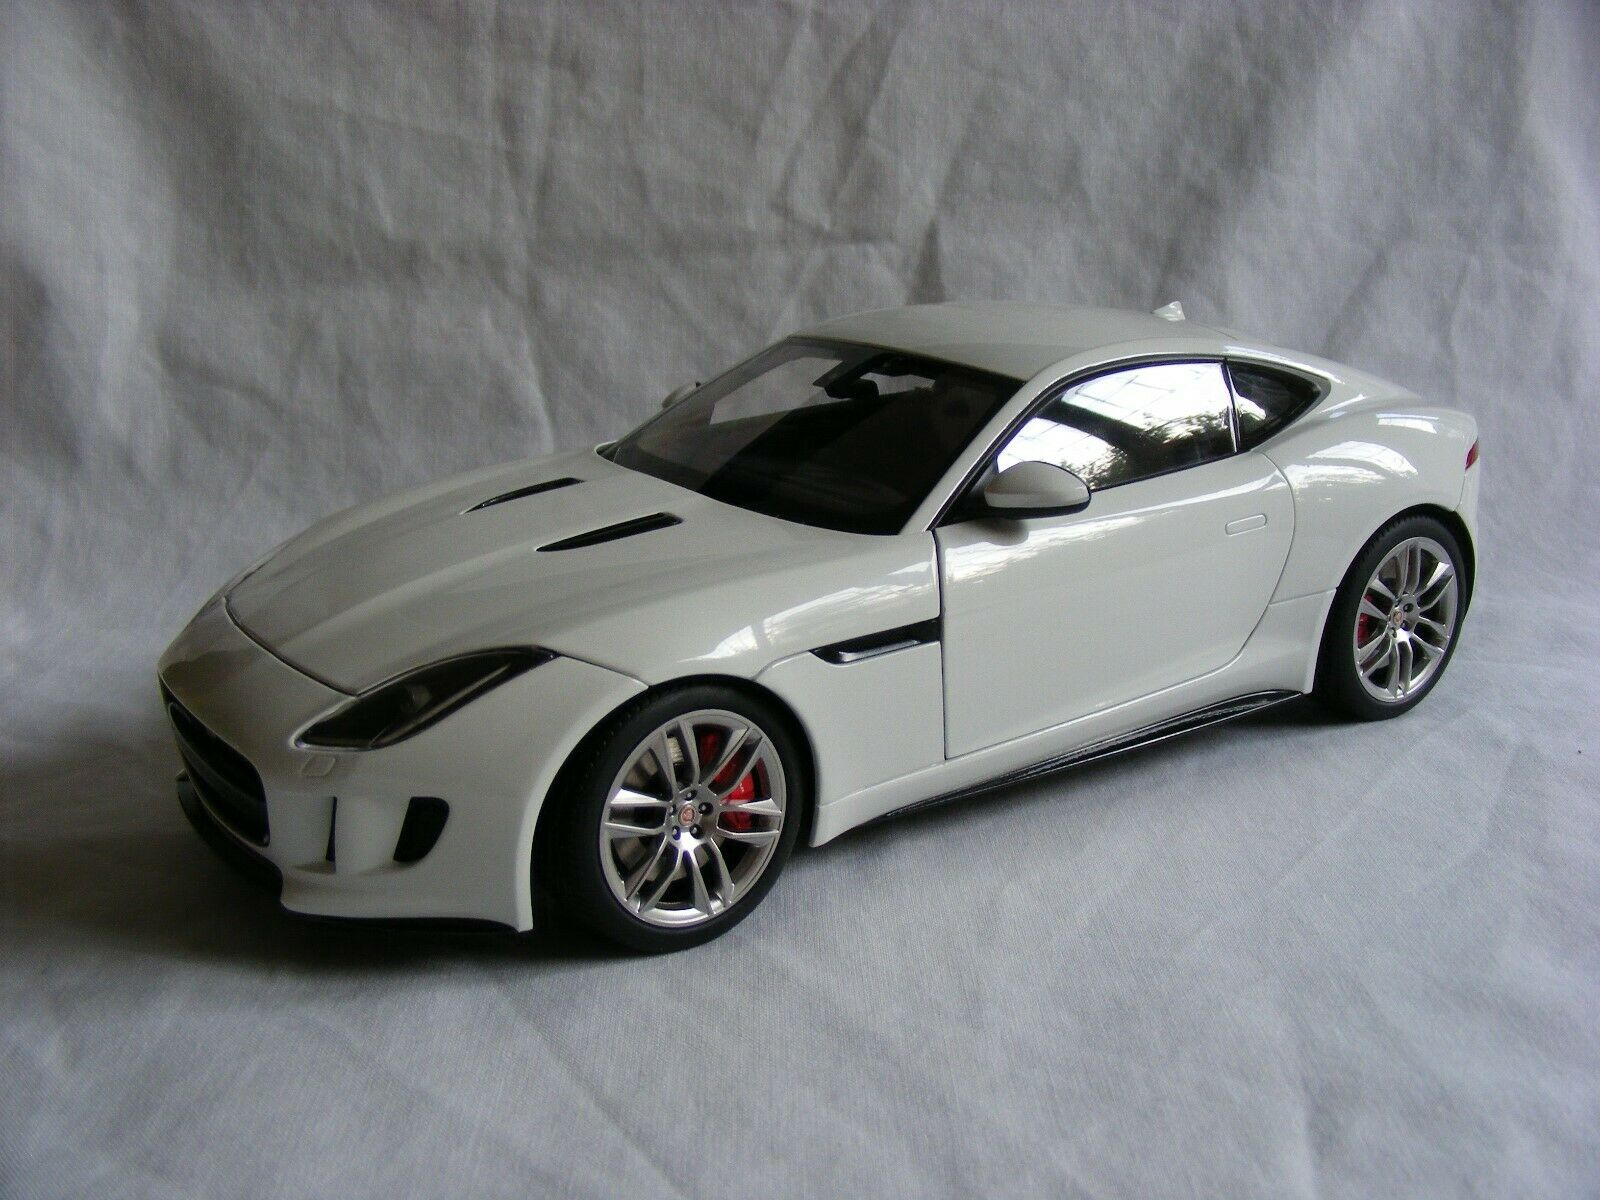 2015 JAGUAR F-TYPE COUPE - 1 18 Scale-AUTOART